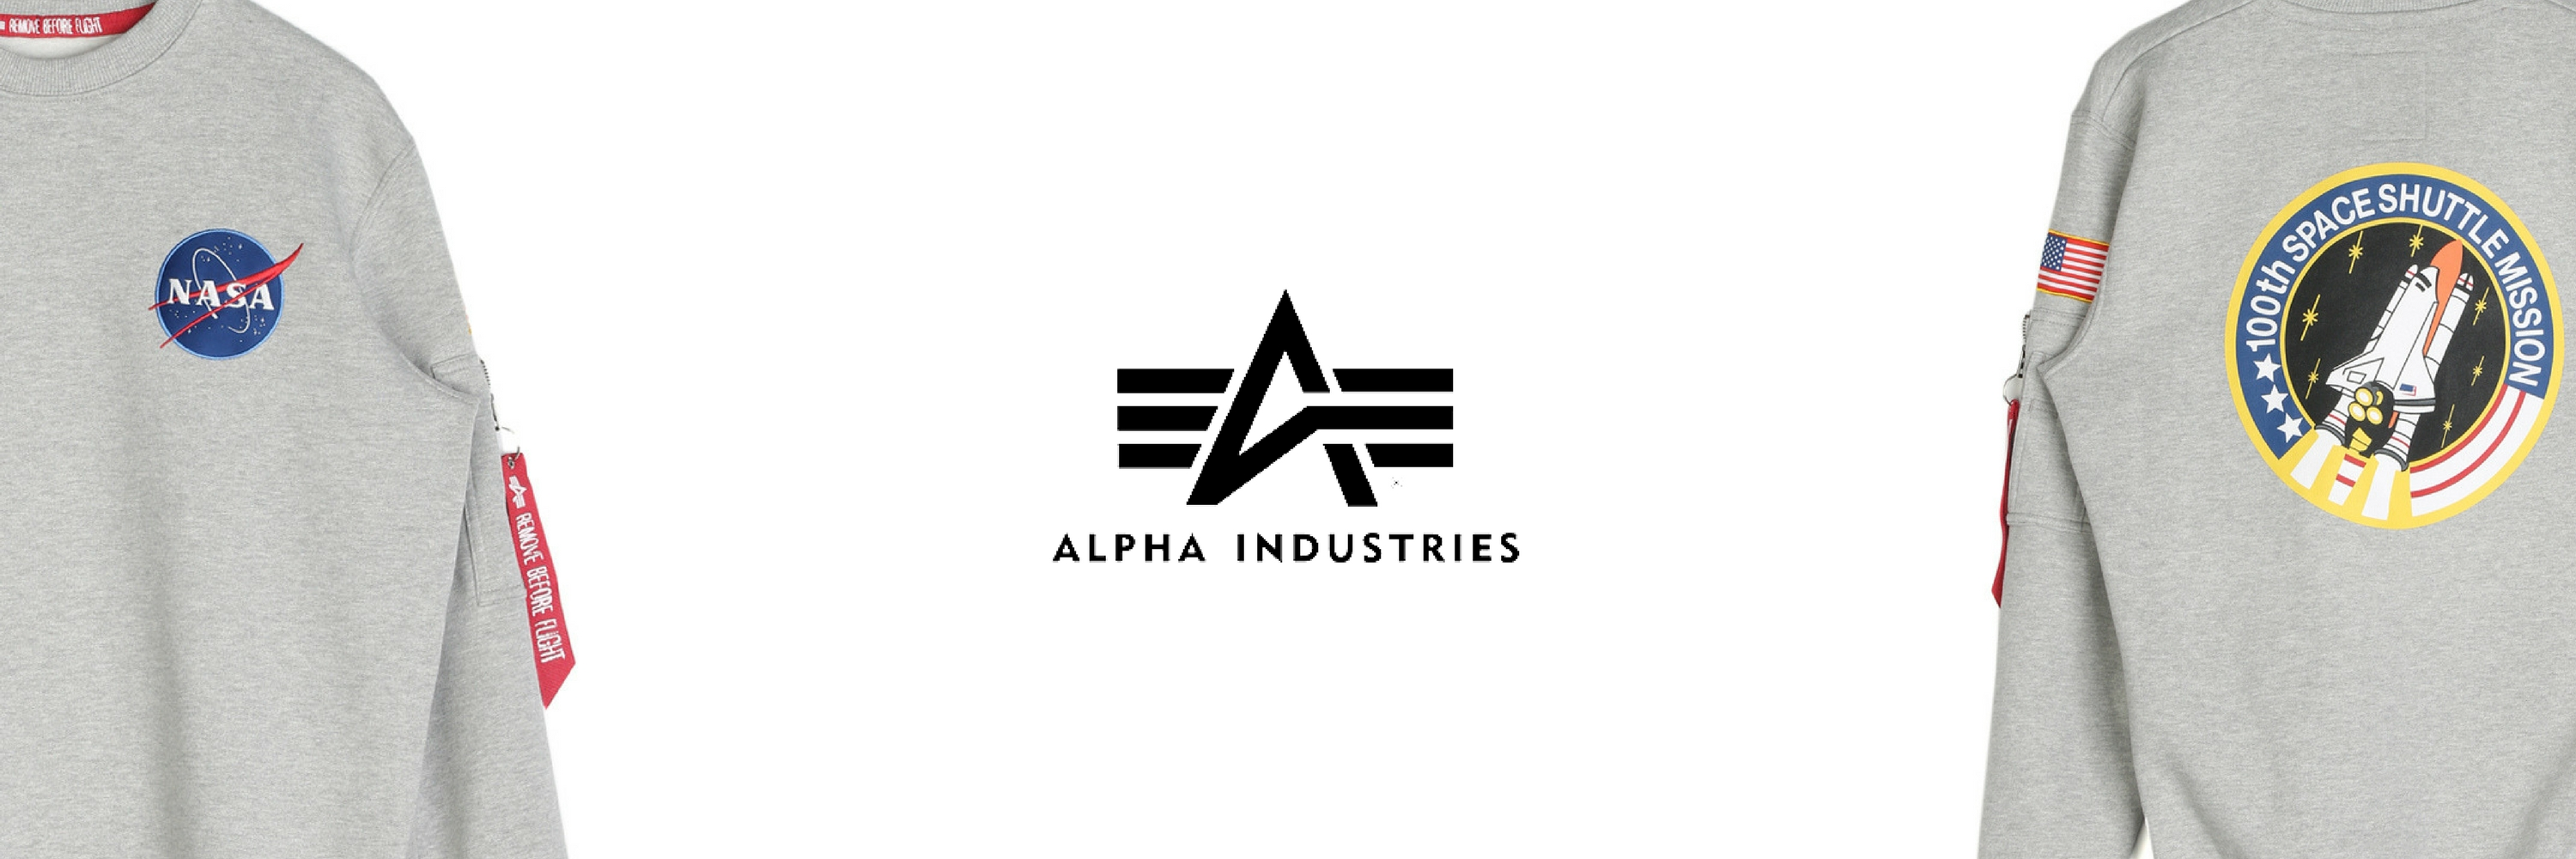 alpha industries 100th space shuttle mission - photo #15